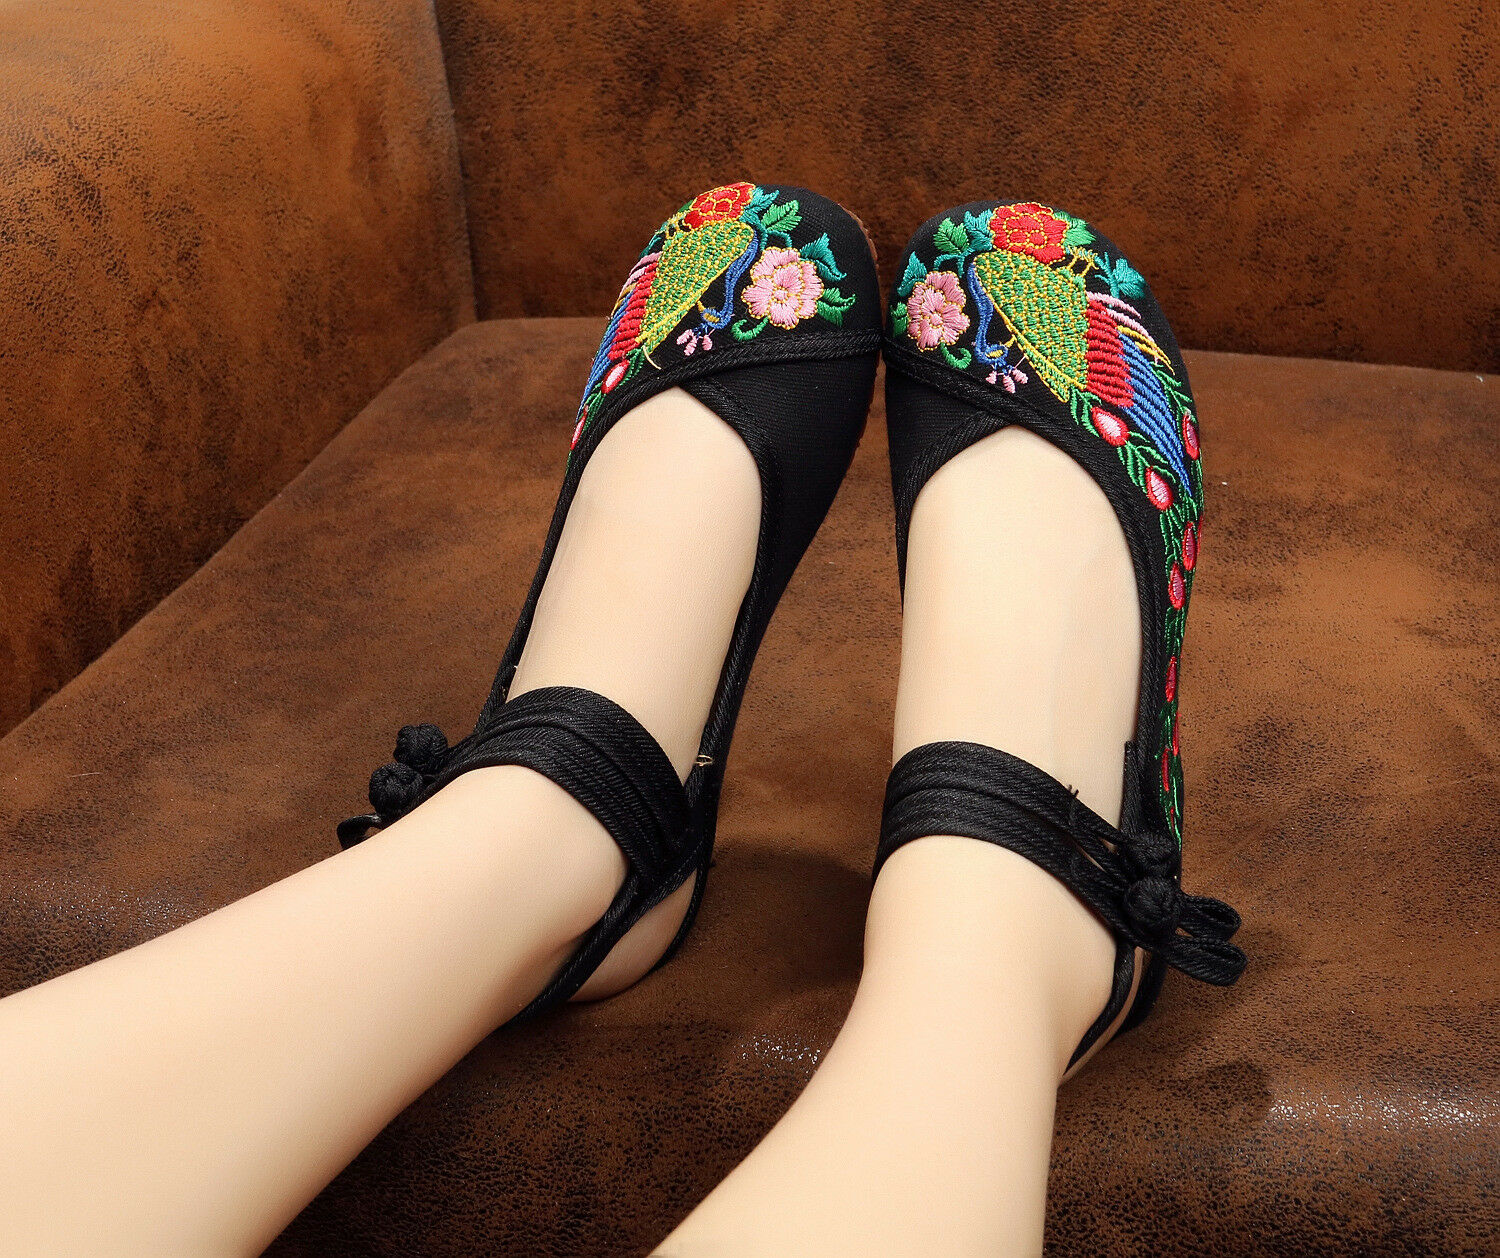 Lady Girls Chic Fashion Shoes Black Peacock Lao Beijing Embroidered Shoes Fashion Sandal c3c8e6